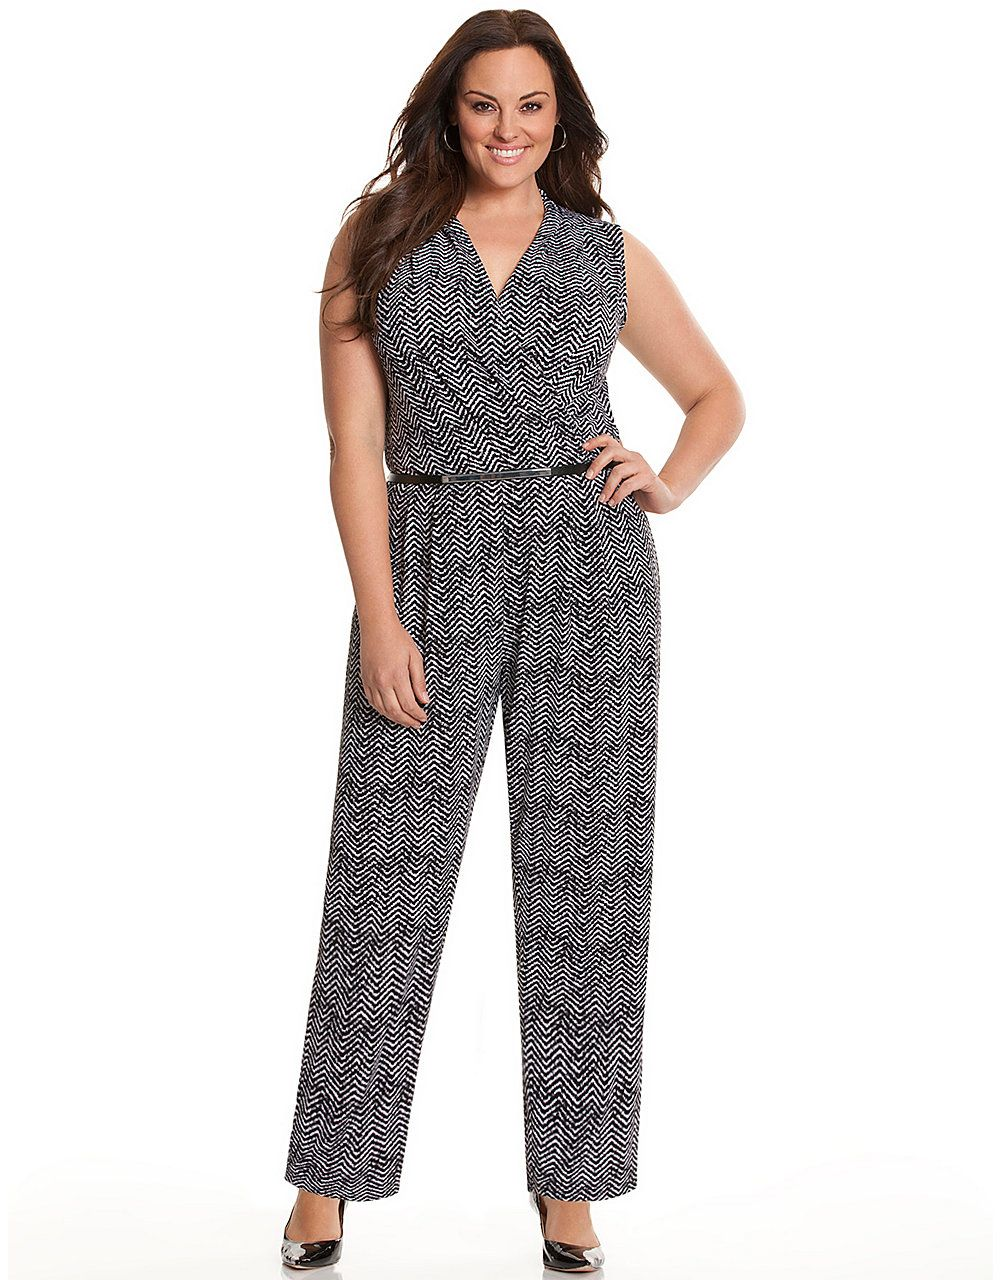 superior performance rock-bottom price outlet sale Plus size dressy jumpsuit by Lane Bryant | Lane Bryant | For ...